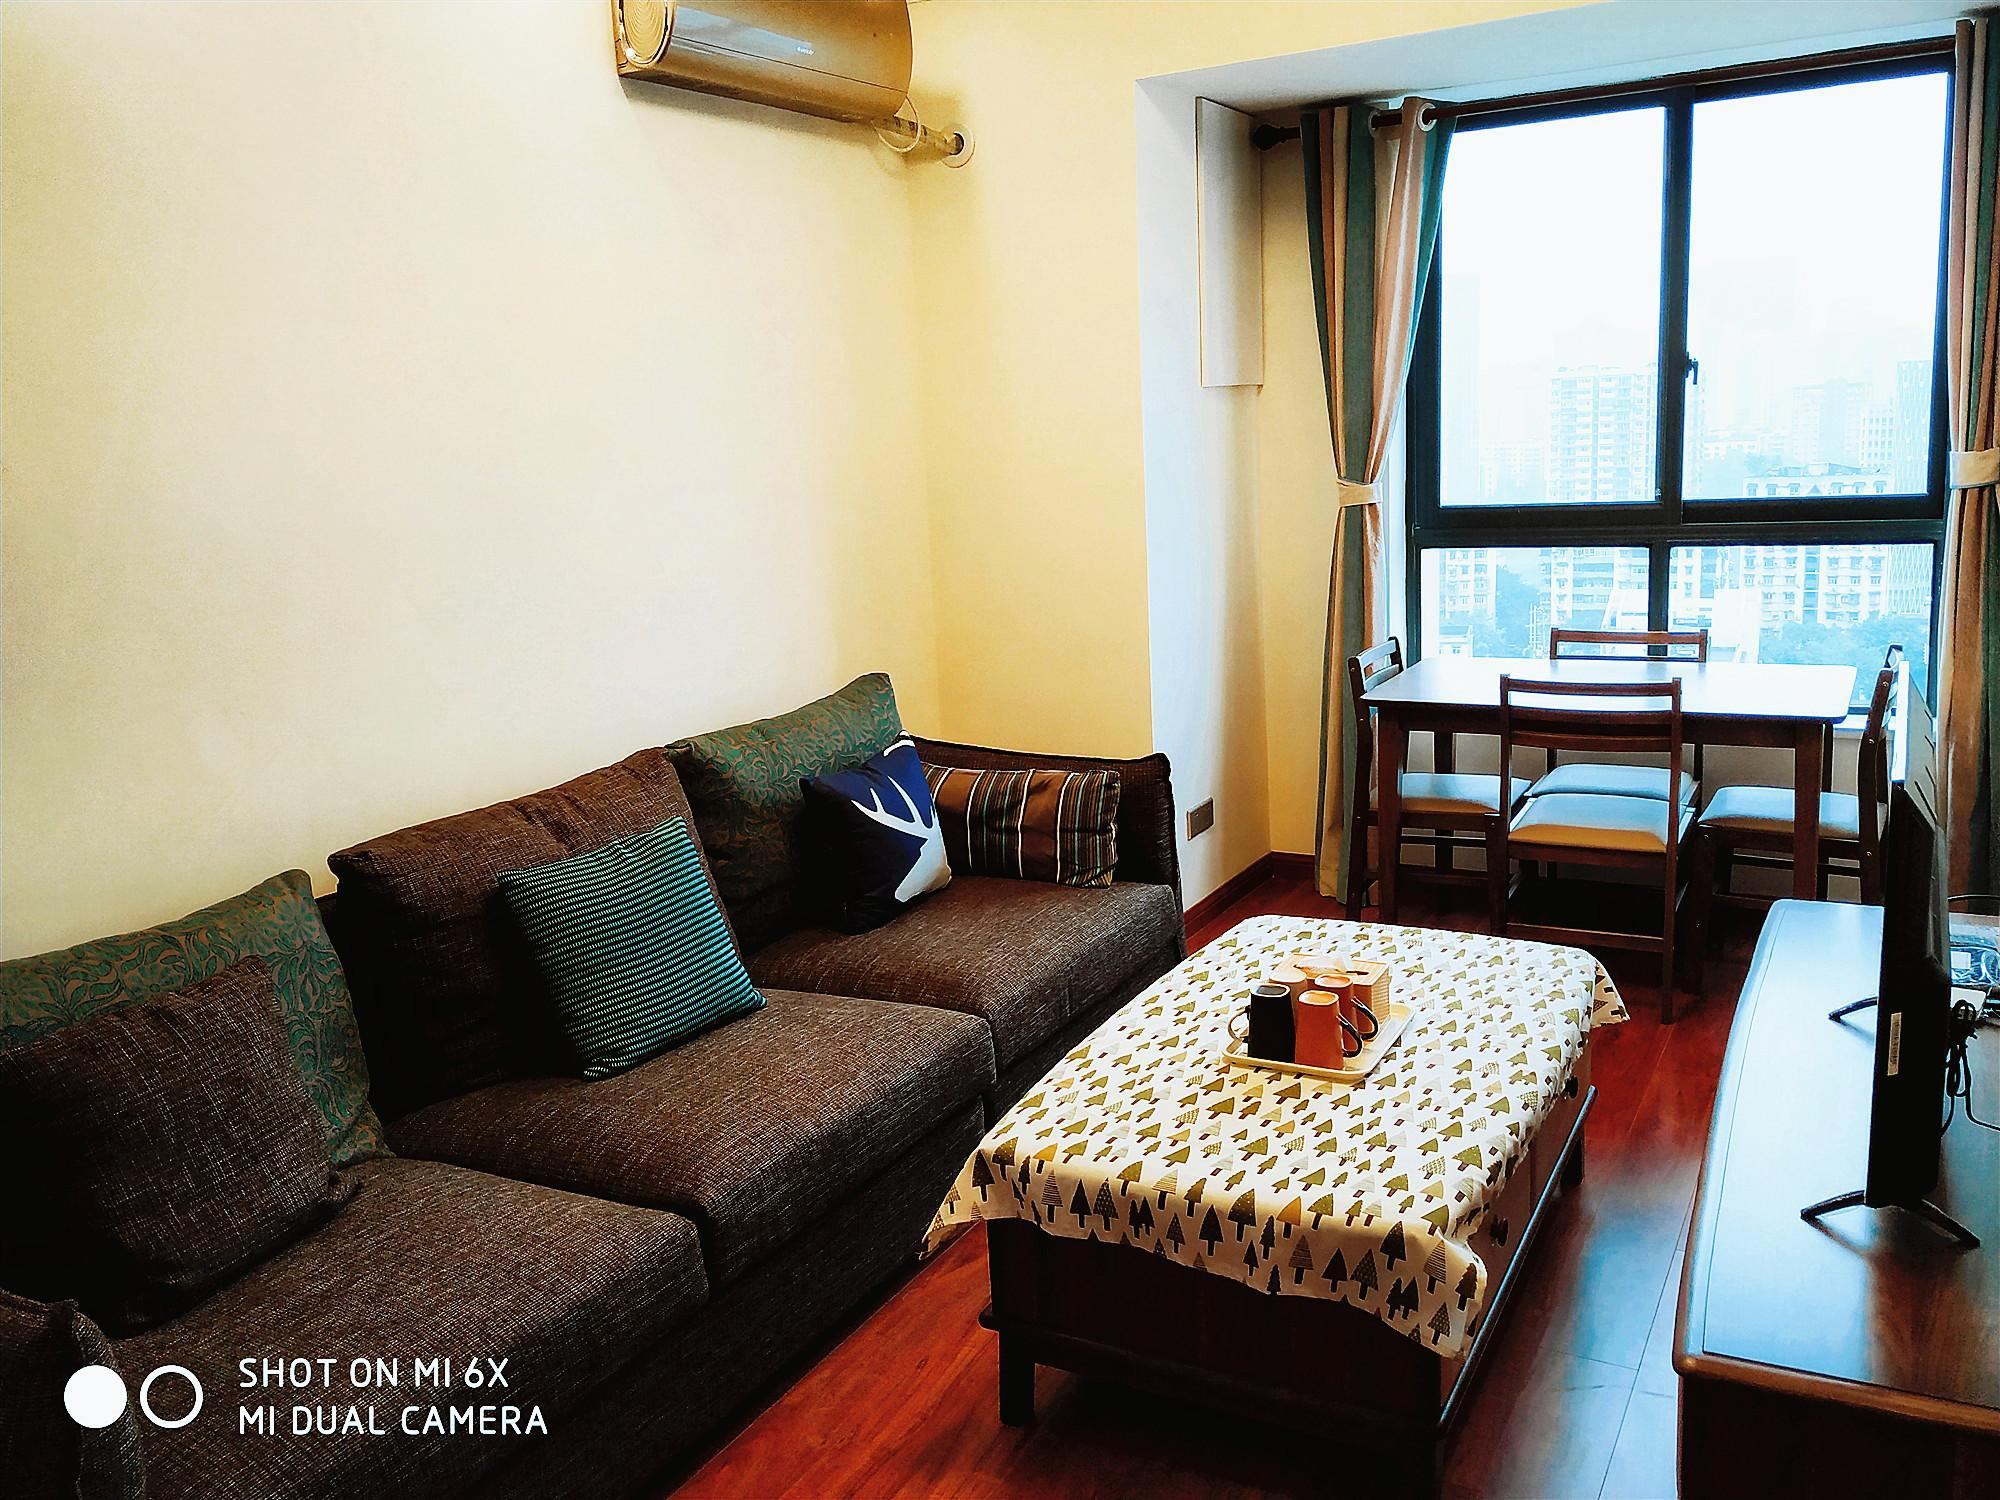 duplex apartment,perfect for business,family trip Reviews